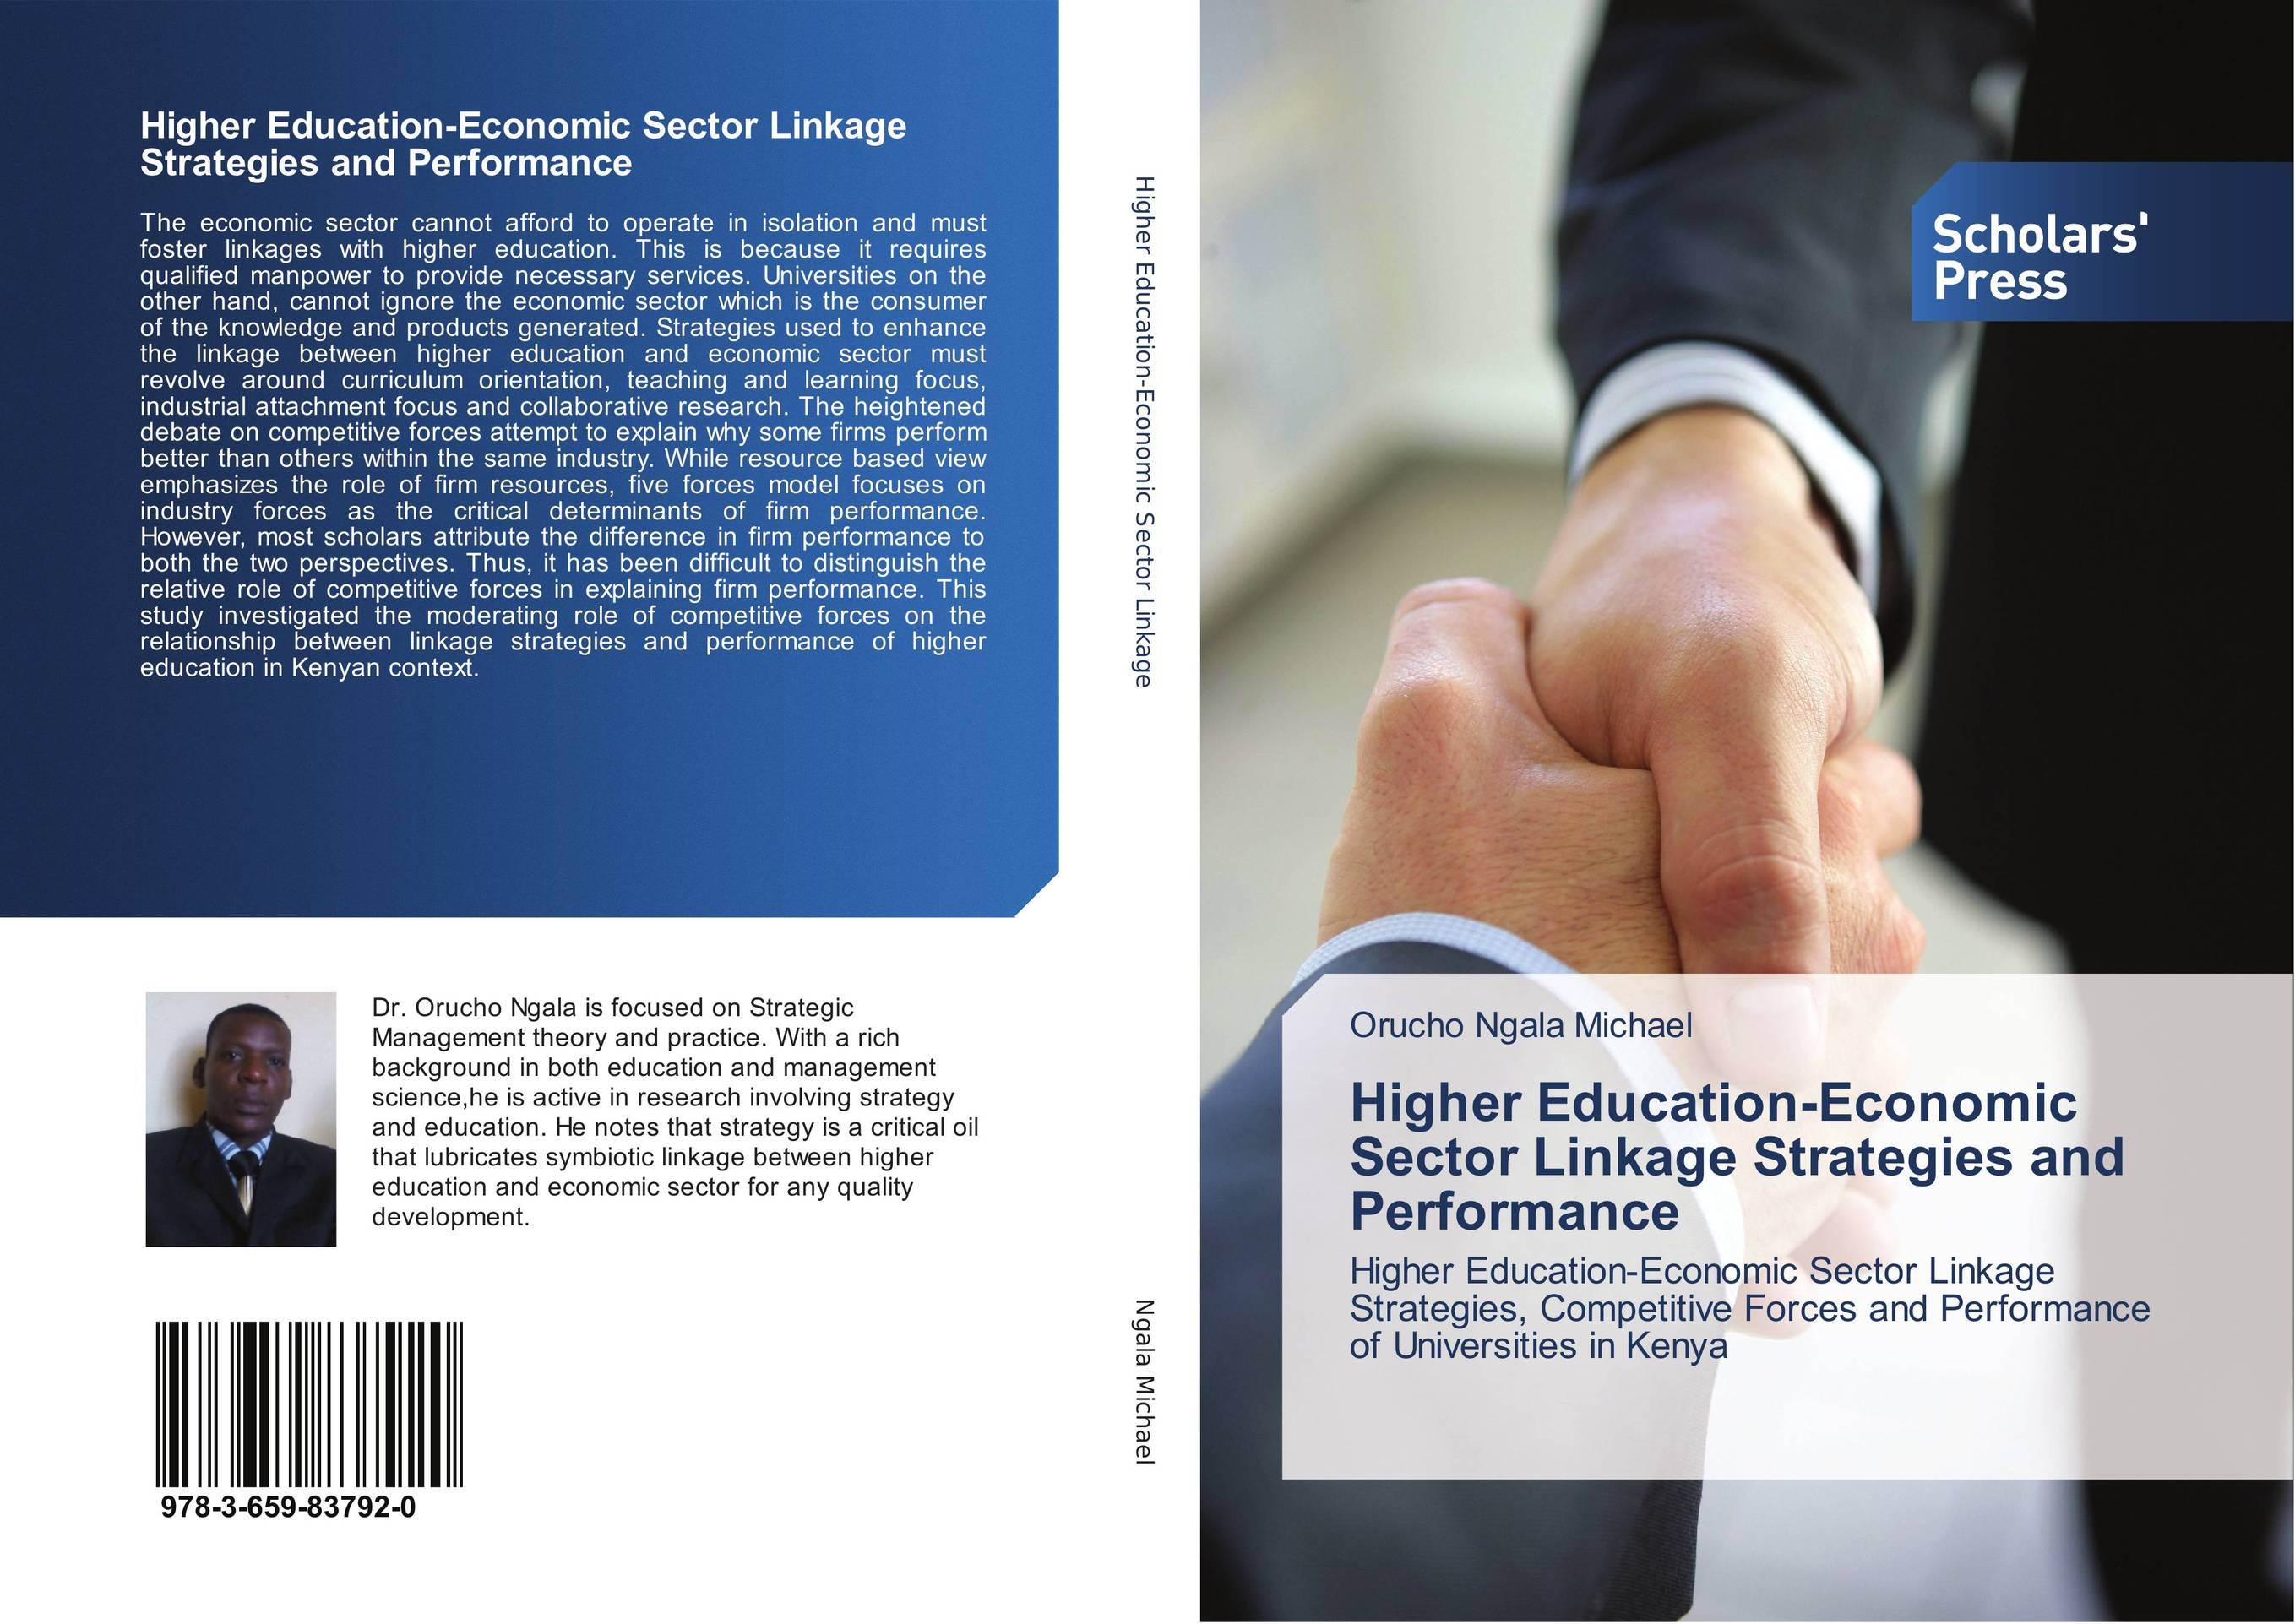 Higher Education-Economic Sector Linkage Strategies and Performance conflict management strategies used in higher education institutes